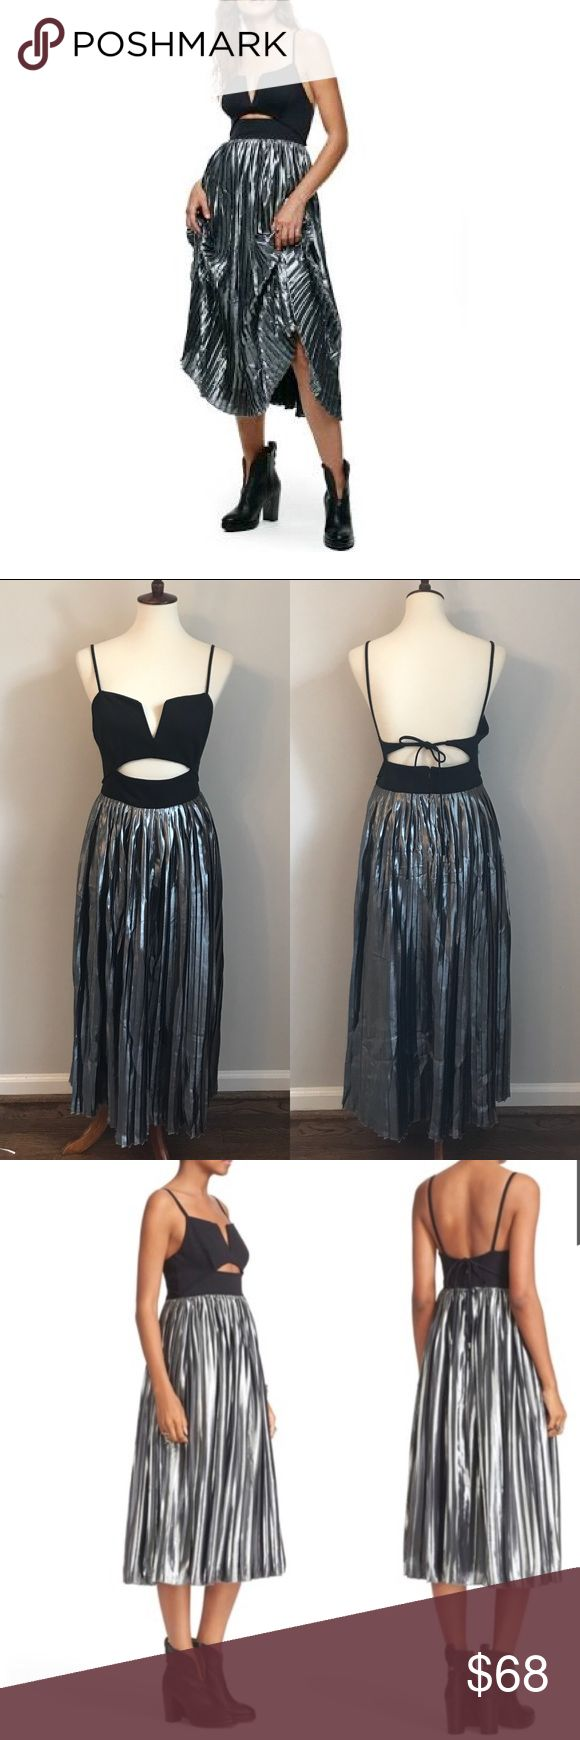 """🌟LOWEST🌟NWT Free People Black/Silver Dress NWT Free People Piper pleated black and silver midi dress. Shimmery, glamorous party dress with a cutout bodice, split neck, and accordion pleated skirt. Sleeveless and hidden back-zip with tie closure. 63% nylon, 33% cotton, 4% spandex.  Measurements (flat): armpit to armpit: 18.5""""; waist (where top and skirt meet): 16""""; length (armpit to hem): 38""""  In excellent new condition. From a smoke and pet free home. Free People Dresses Midi"""